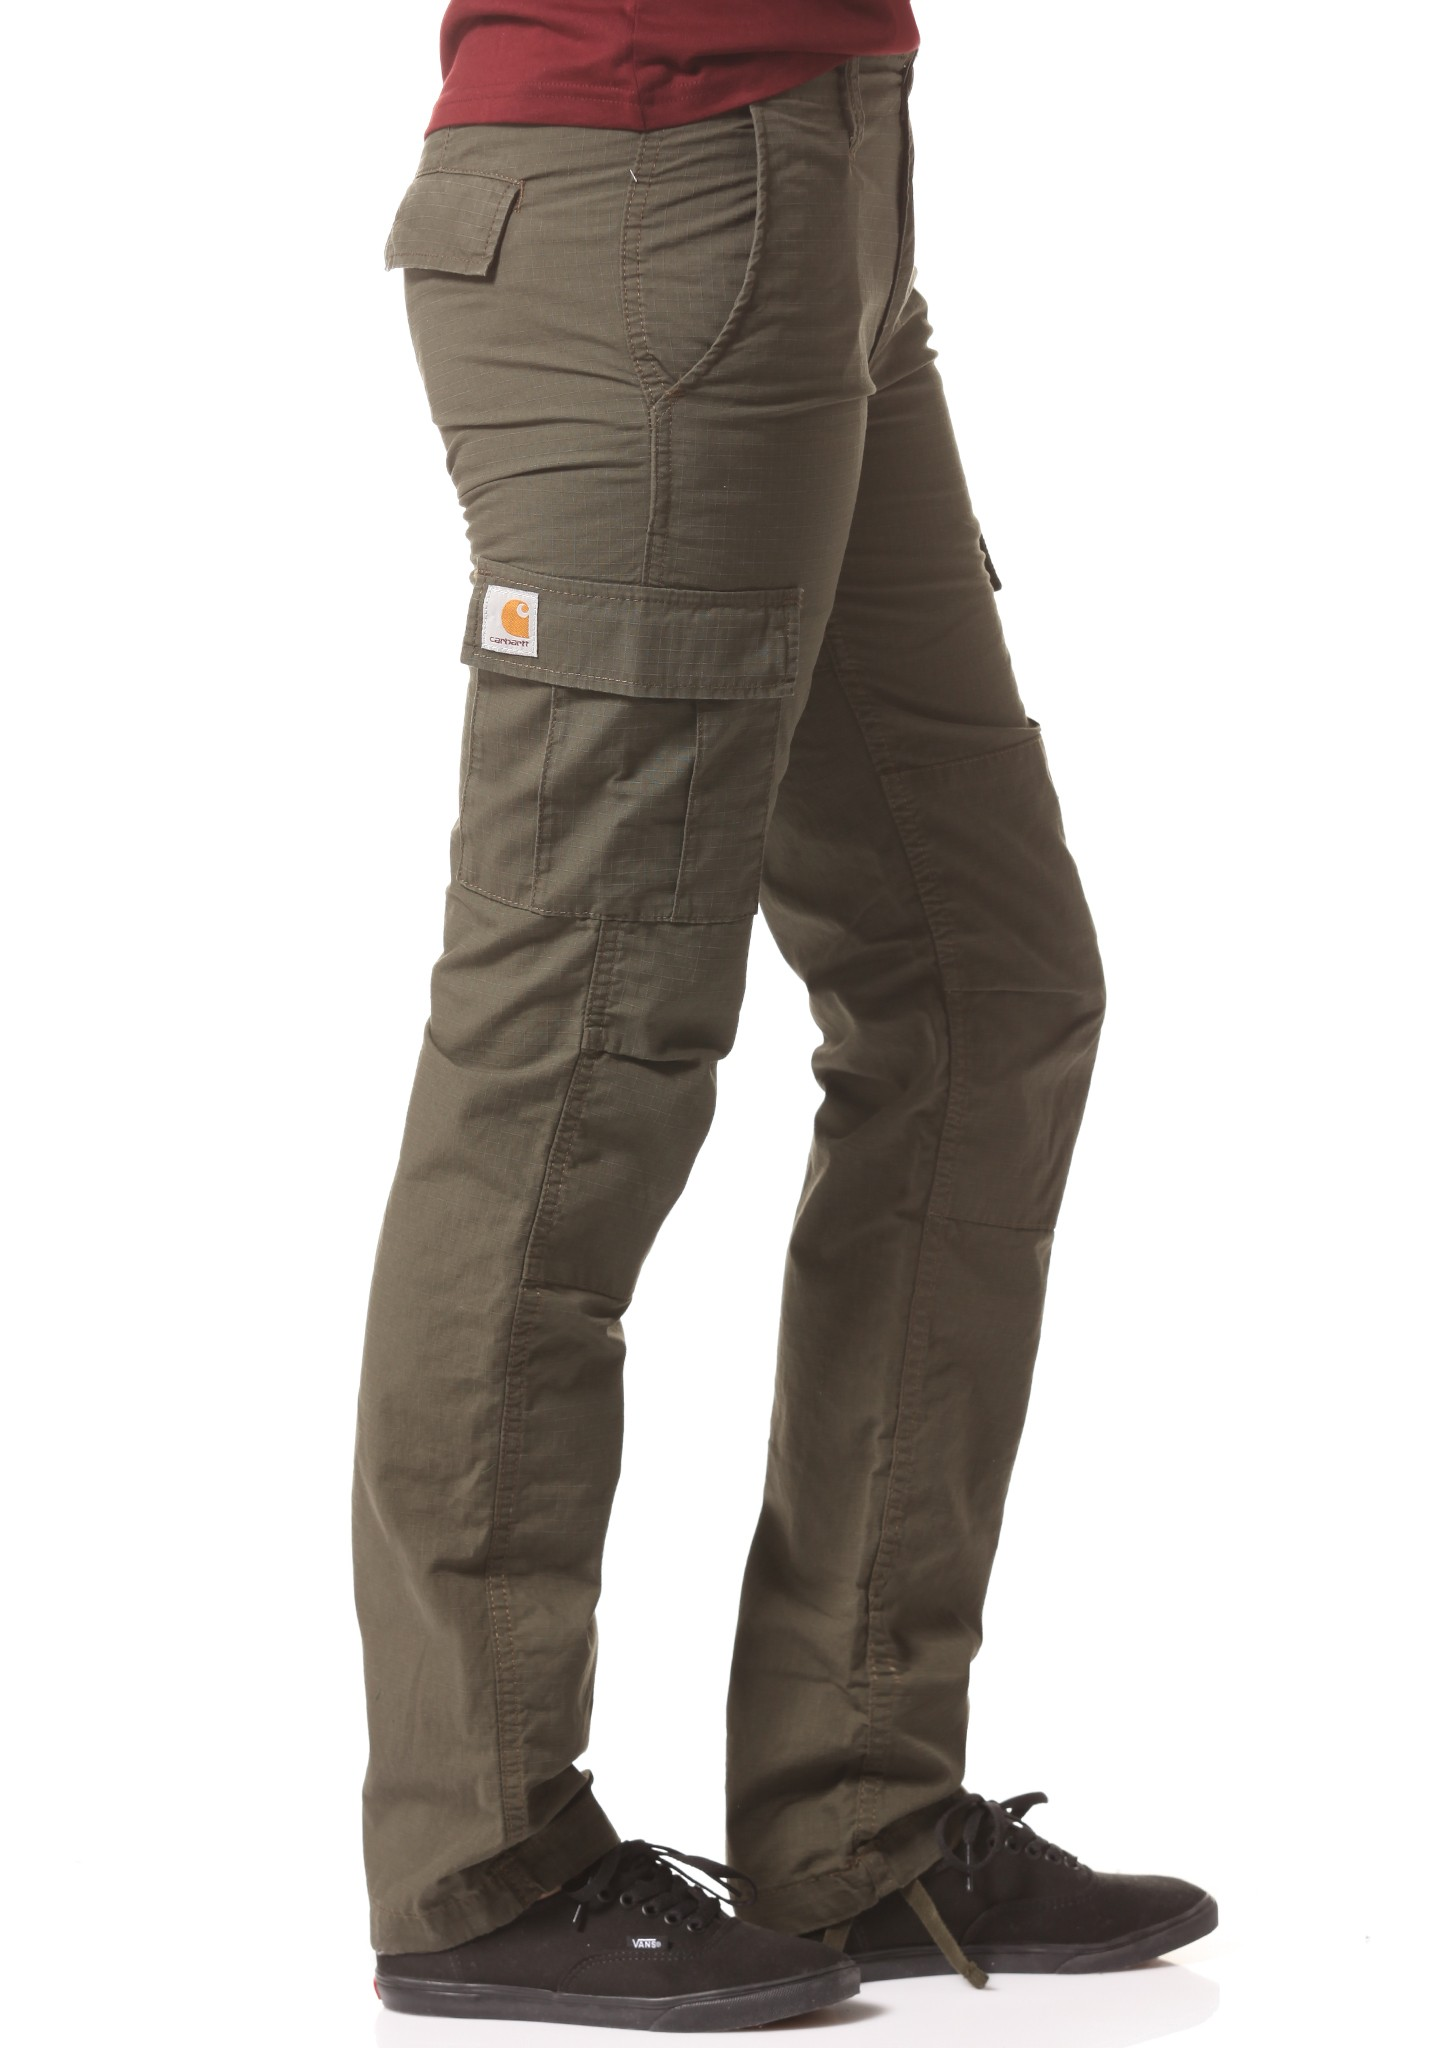 neu carhartt wip x 39 aviation damen cargohose ebay. Black Bedroom Furniture Sets. Home Design Ideas